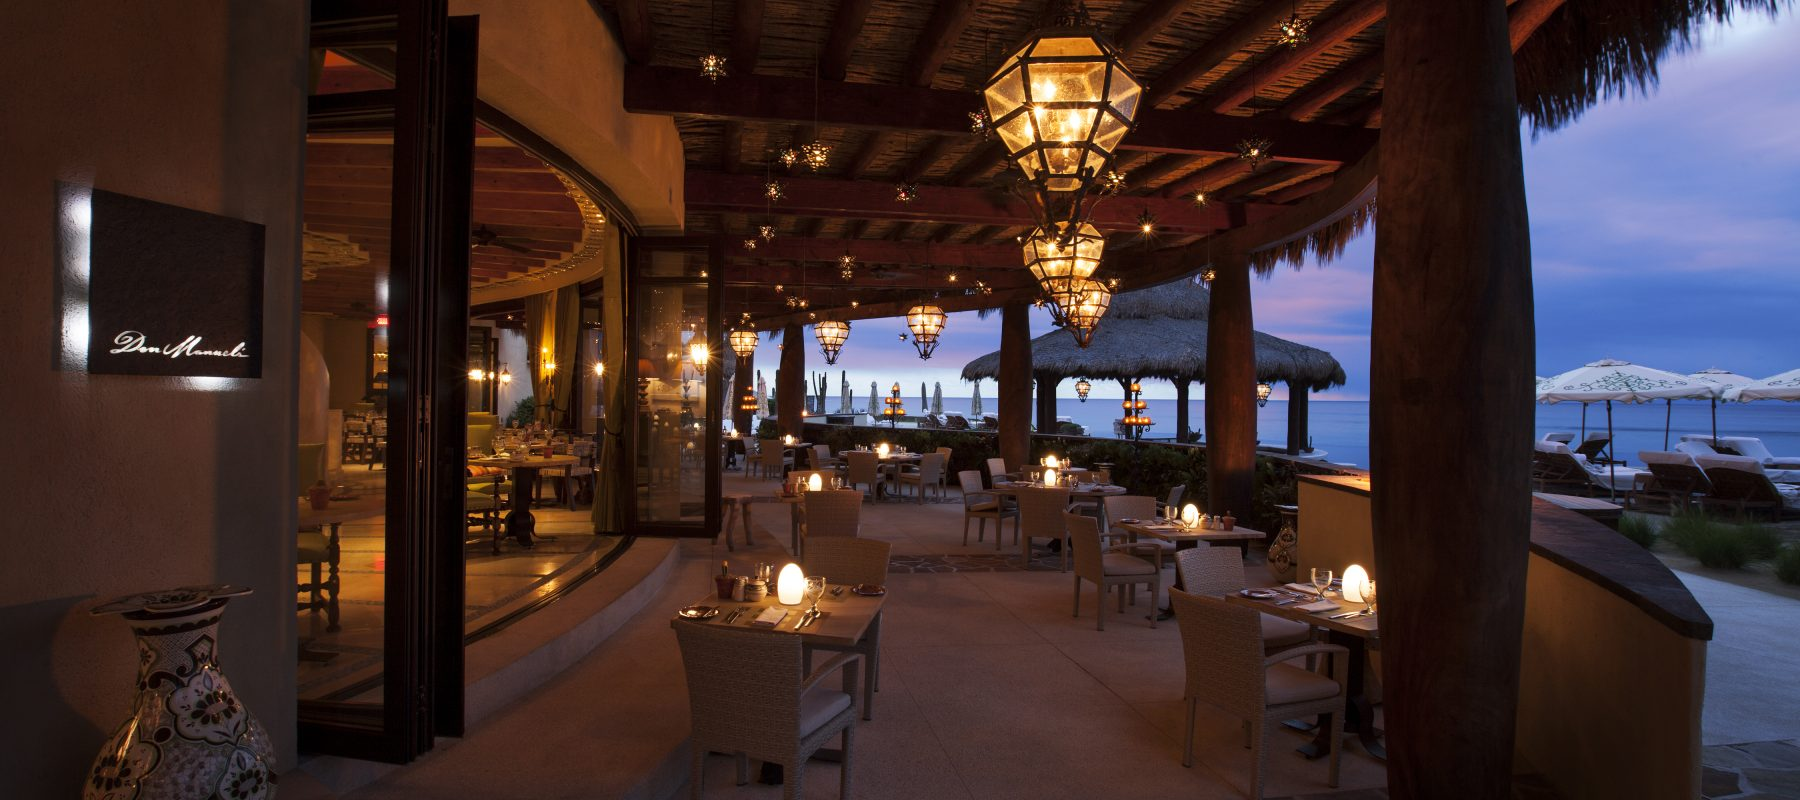 Don Manuel's terrace Glory Dusk at The Resort at Pdregal